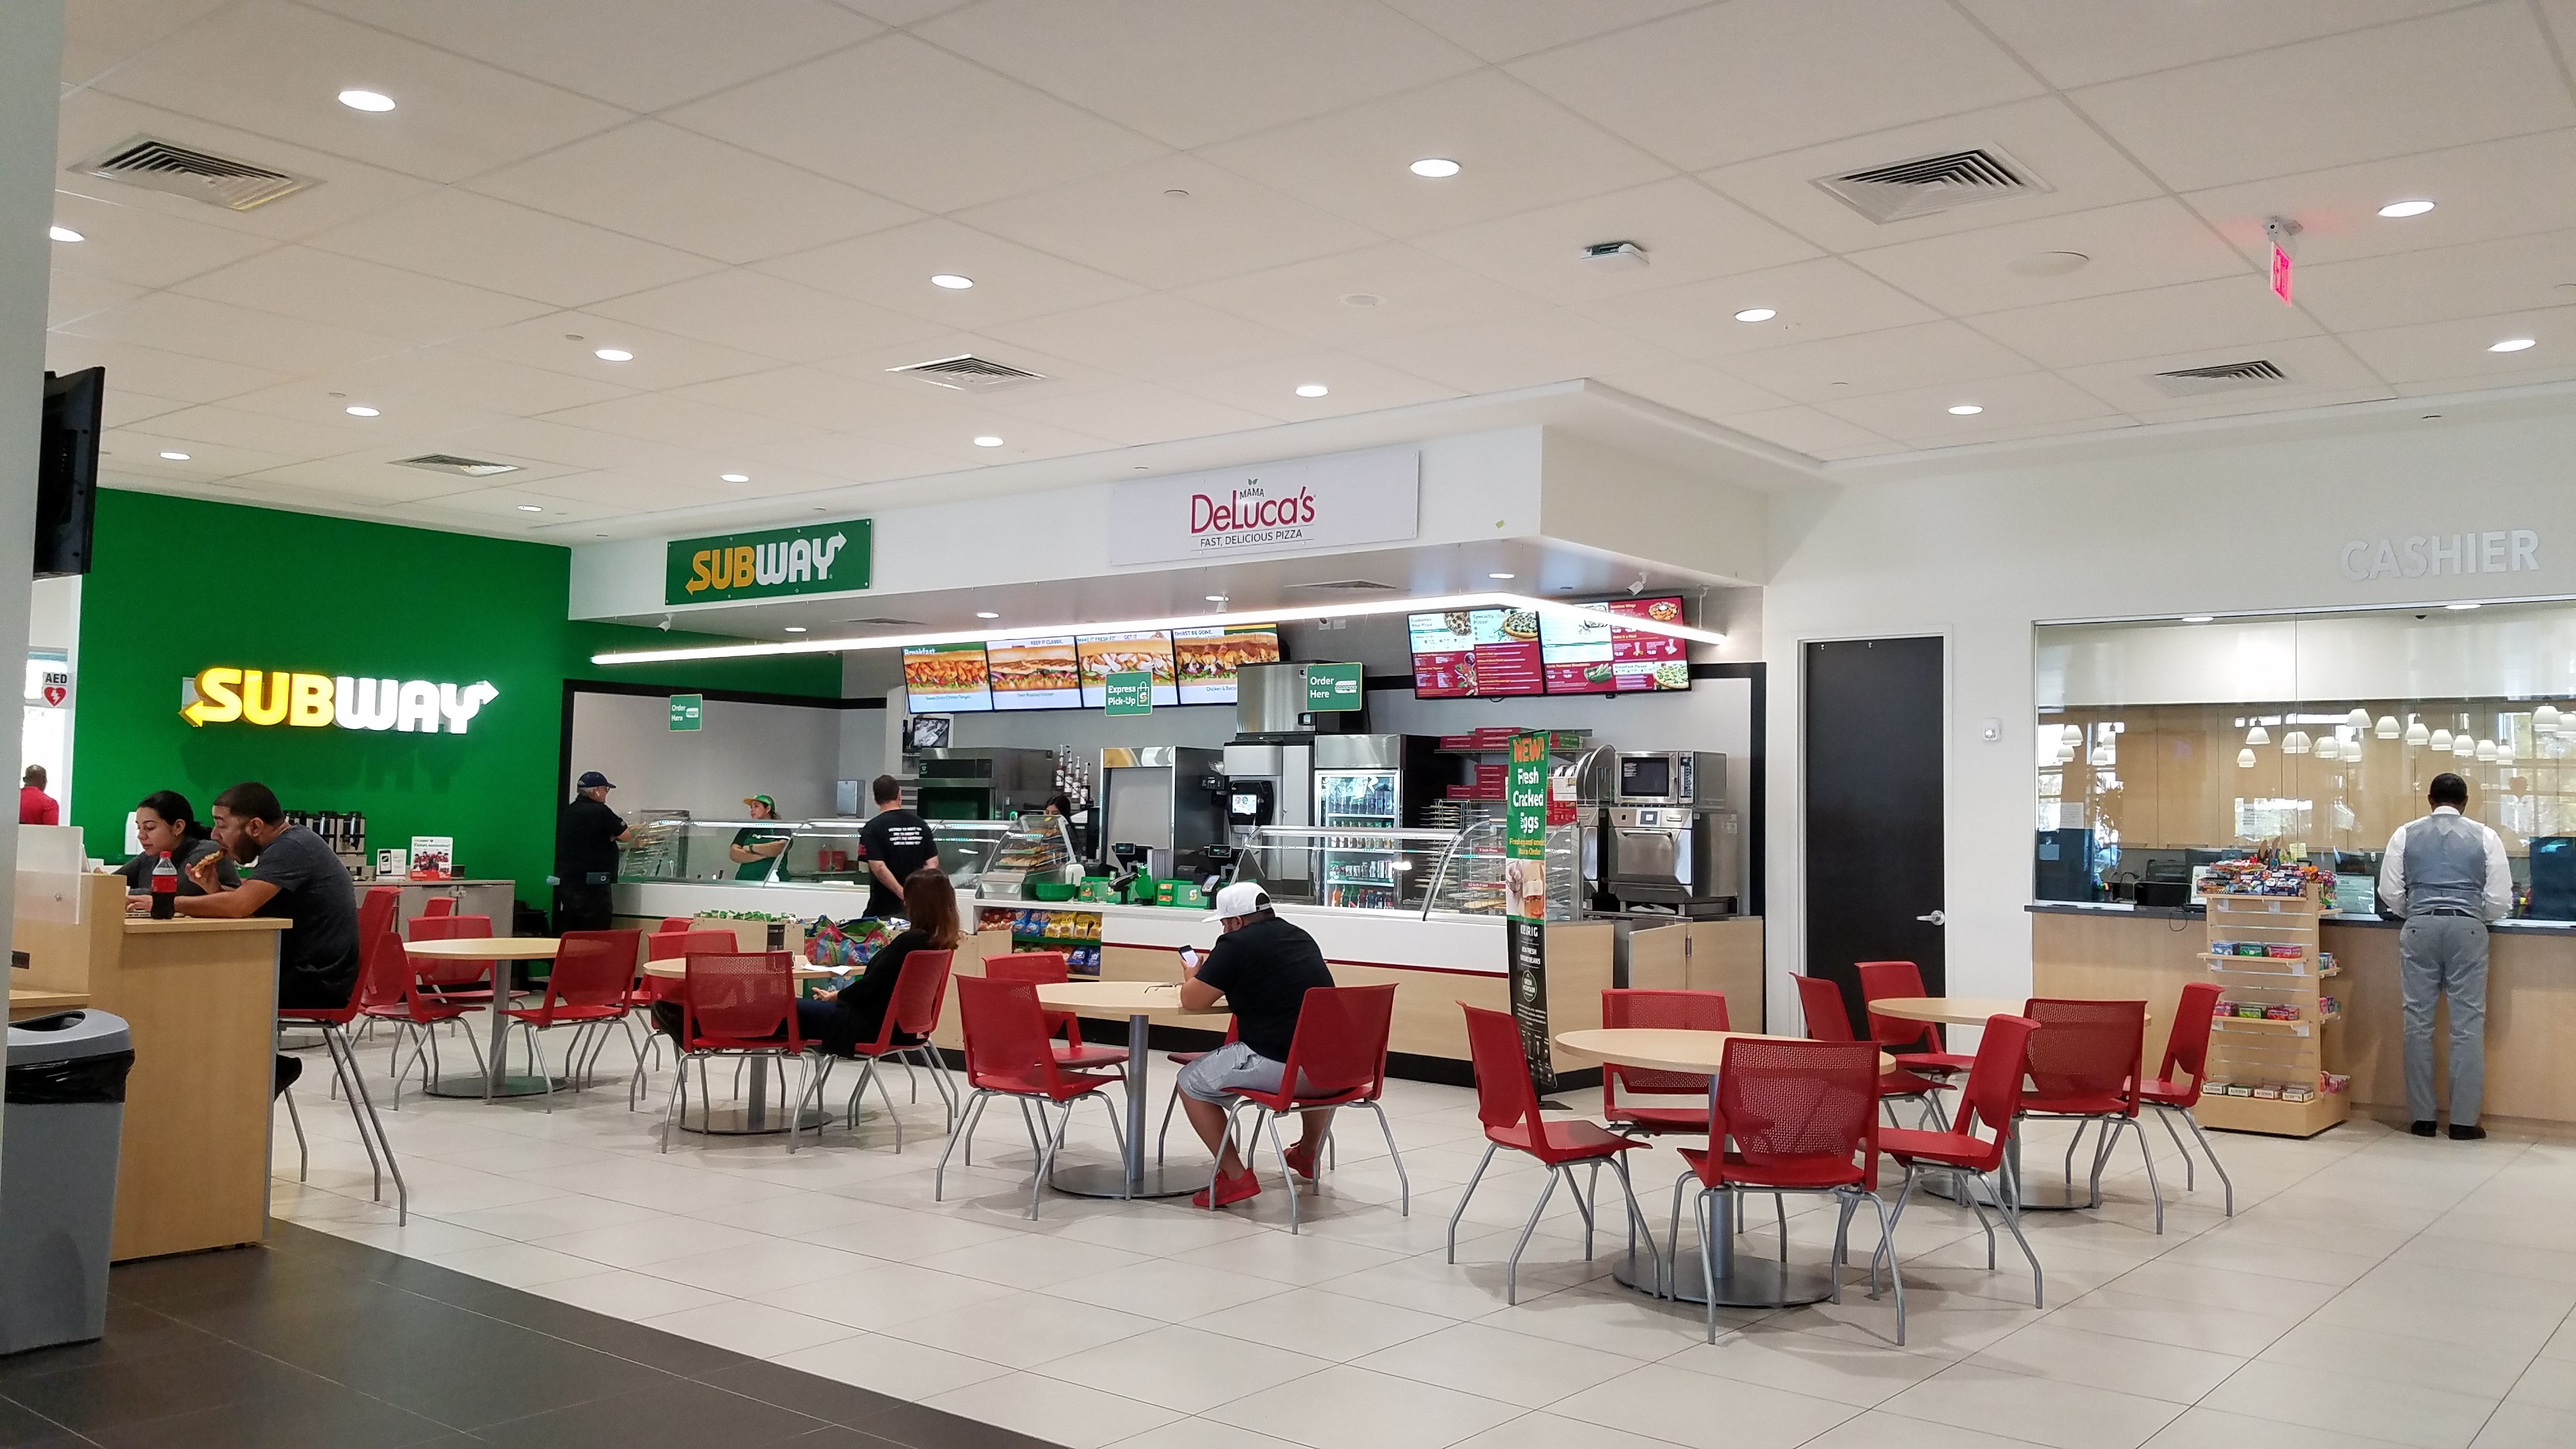 Subway in the building